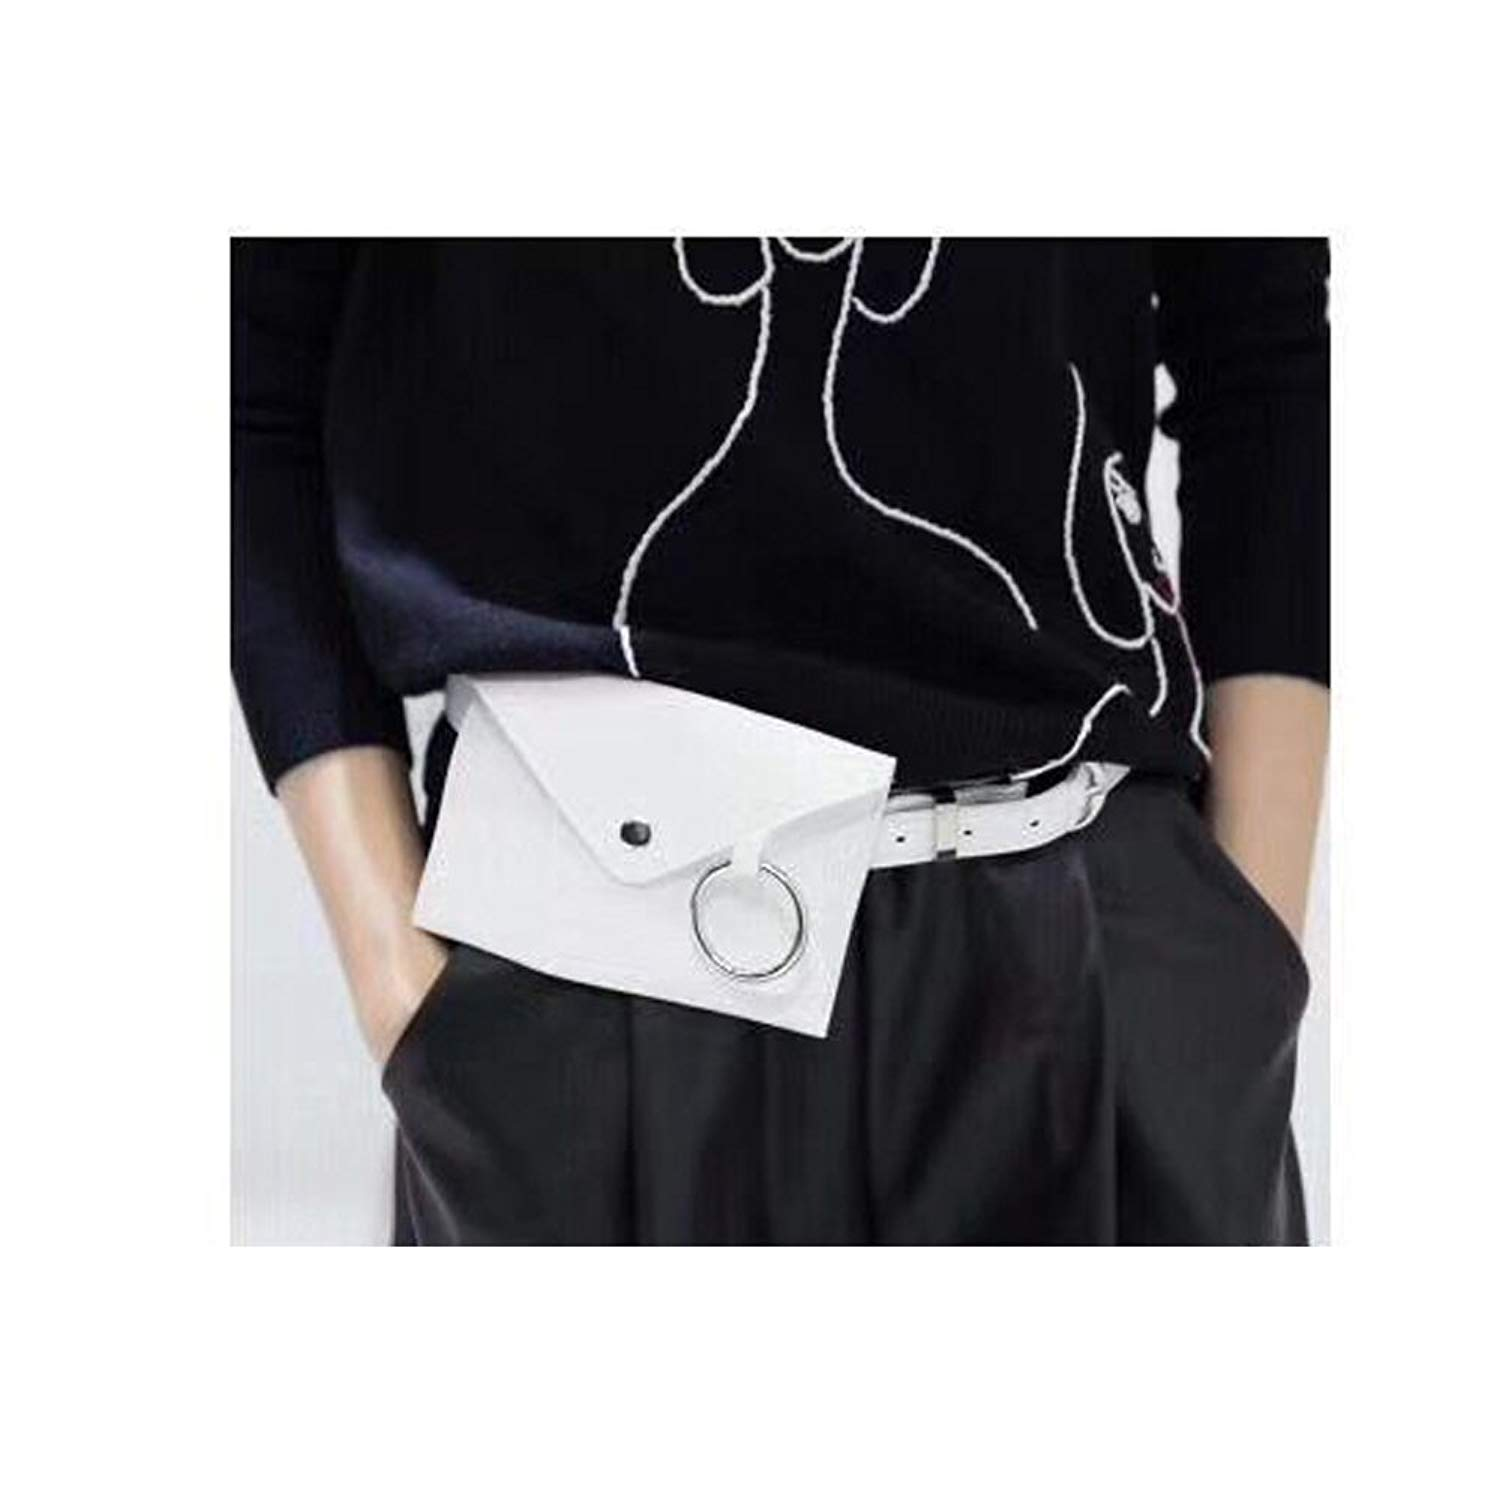 Womens side buckle leather fanny pack,VITORIA'S GIFT removable Round buckle Belt with MINI Purse Travel Cell Phone Bag